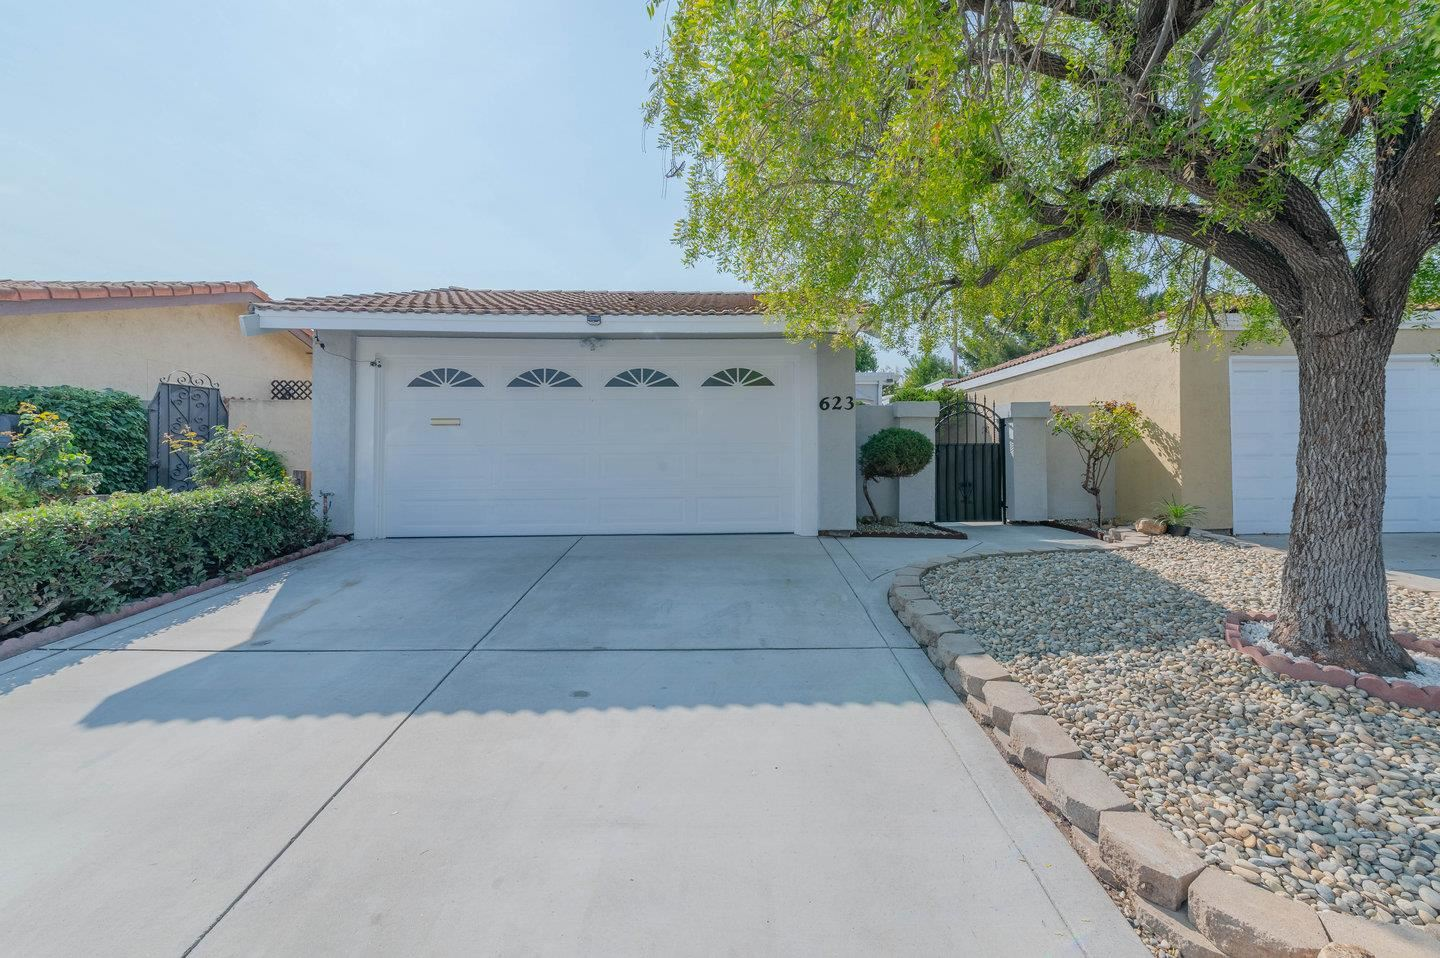 Photo for 623 Lisa Way, CAMPBELL, CA 95008 (MLS # ML81865987)